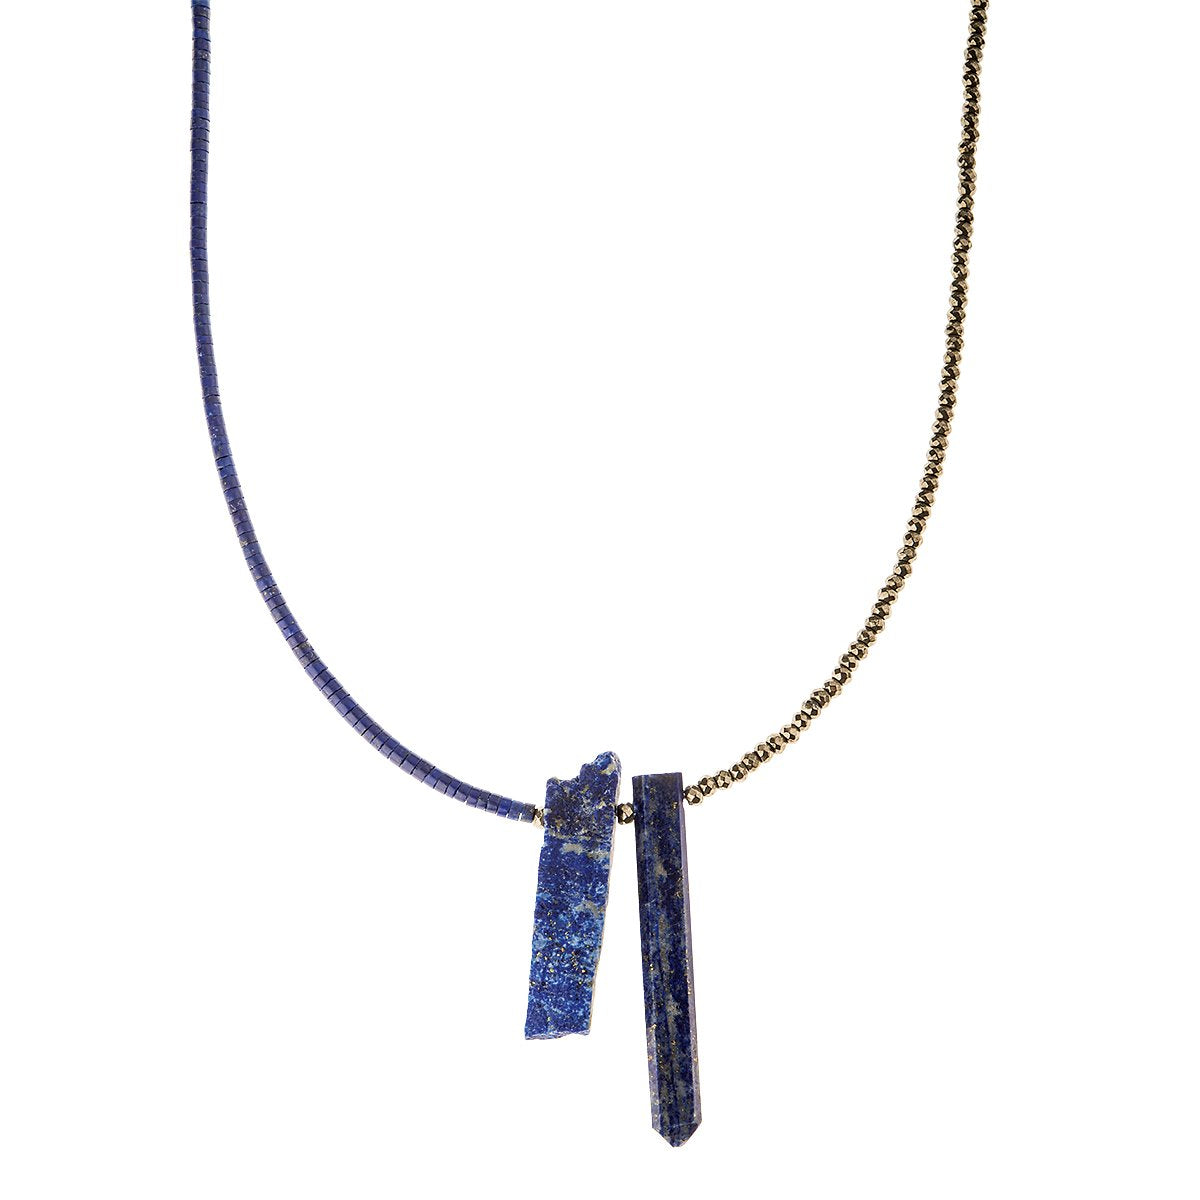 Necklace from Etnoart collection - EAN62-1